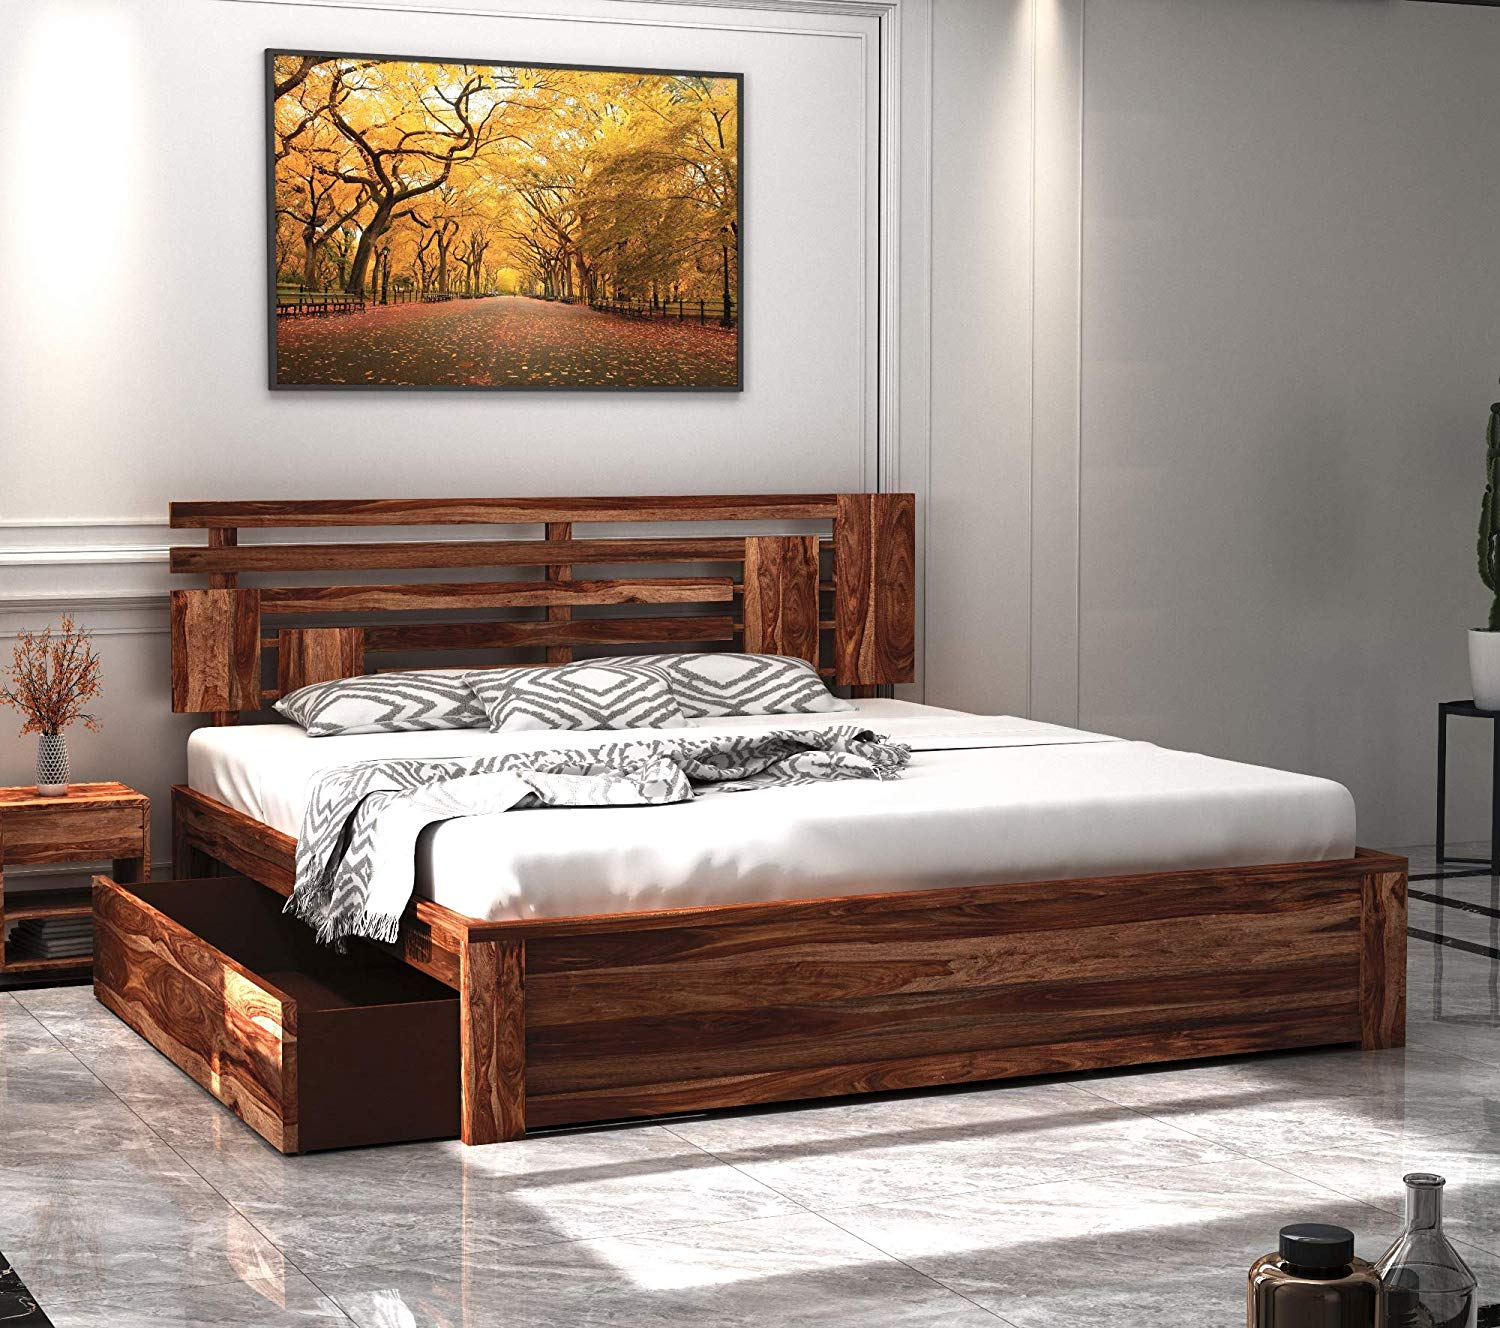 Wooden Cot Aelinia Sheesham King Size Bed with Drawer Storage Cabinet for Bedroom Home (Teak Finish - Matured Wooden Furniture_King)